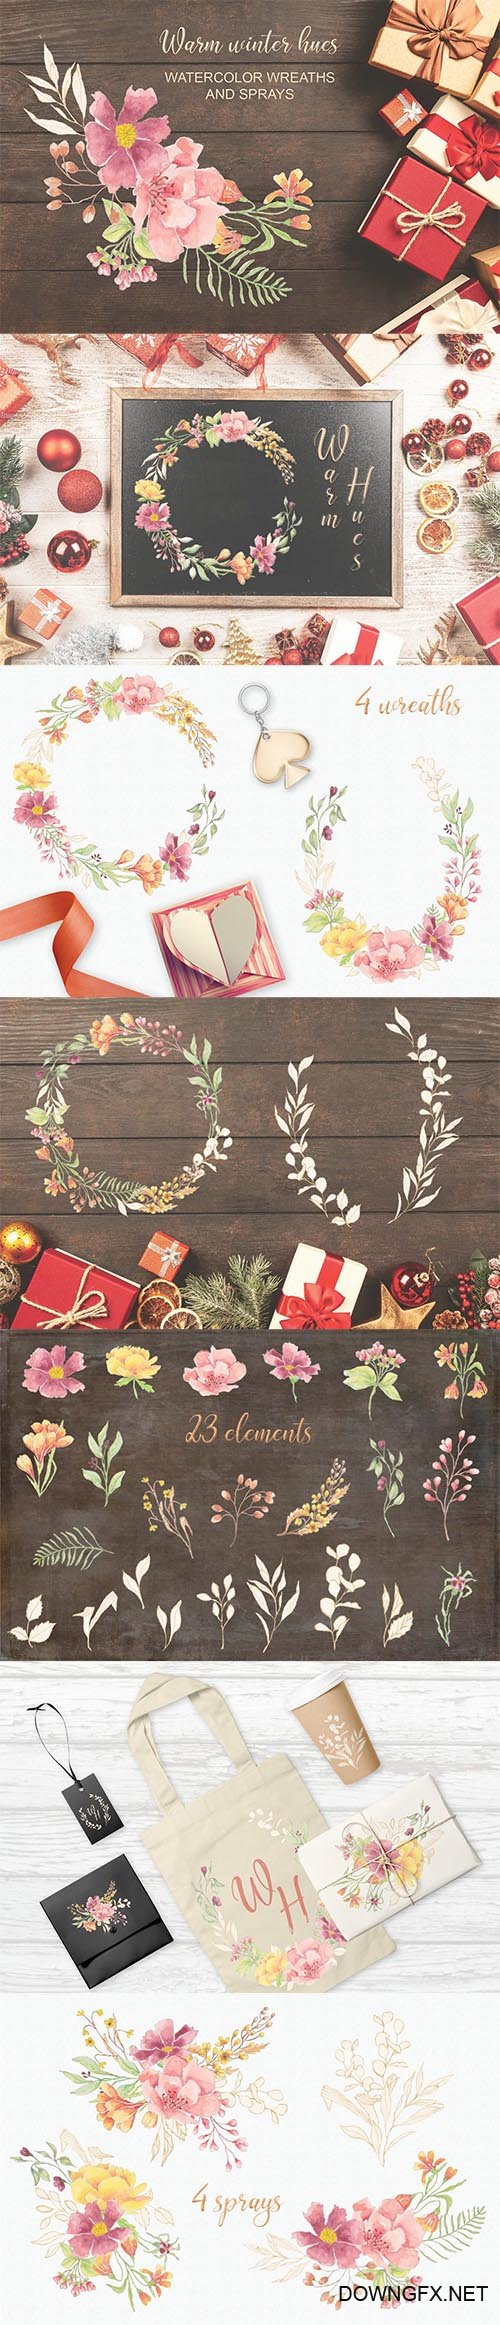 Warm Winter Hues: Watercolor Wreaths and Sprays